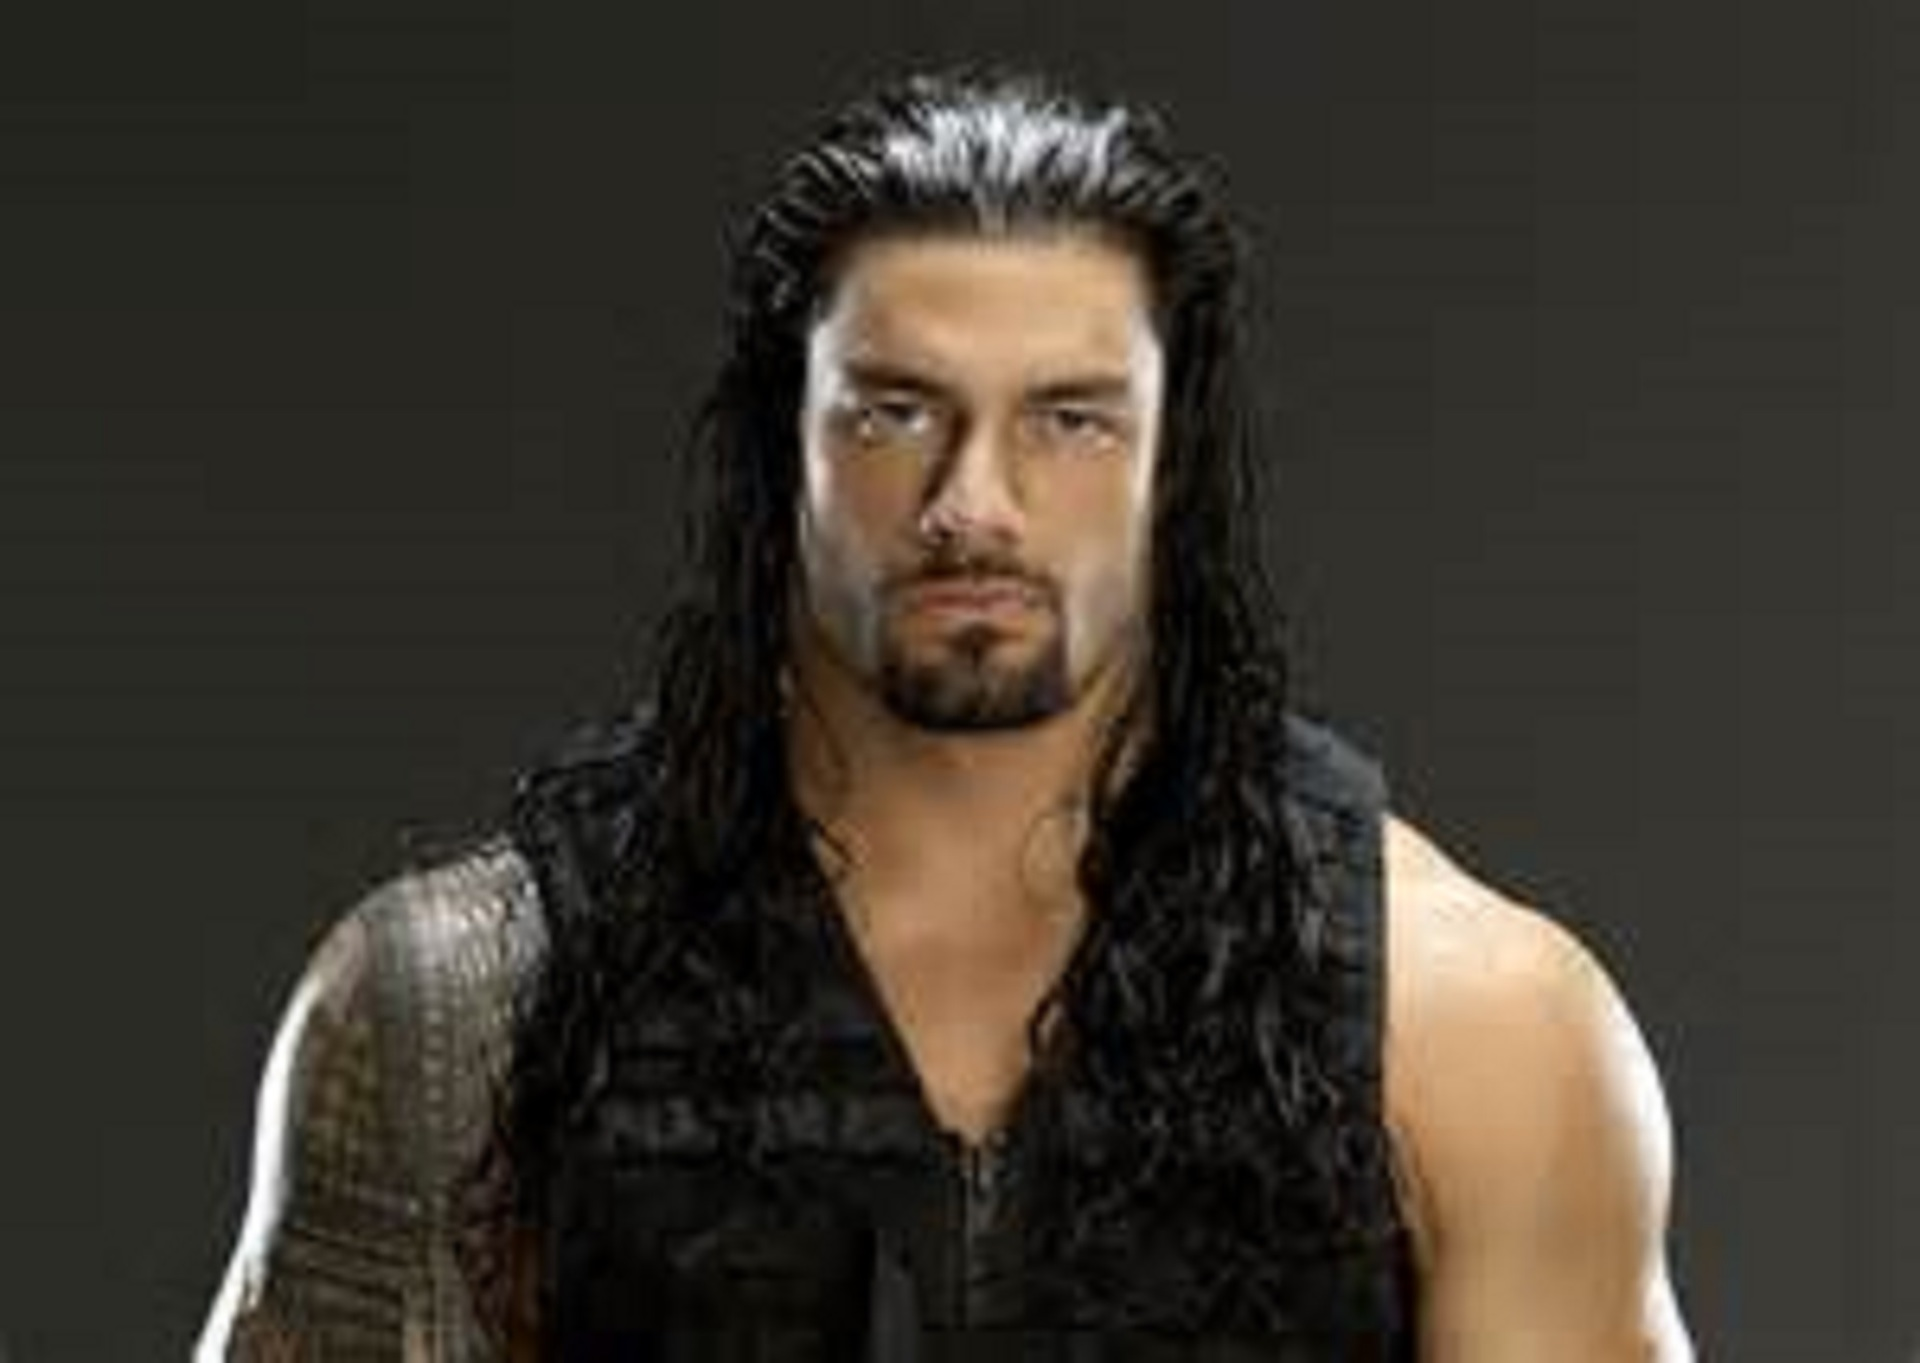 Roman Reigns Named As Client By Steroid Distributor